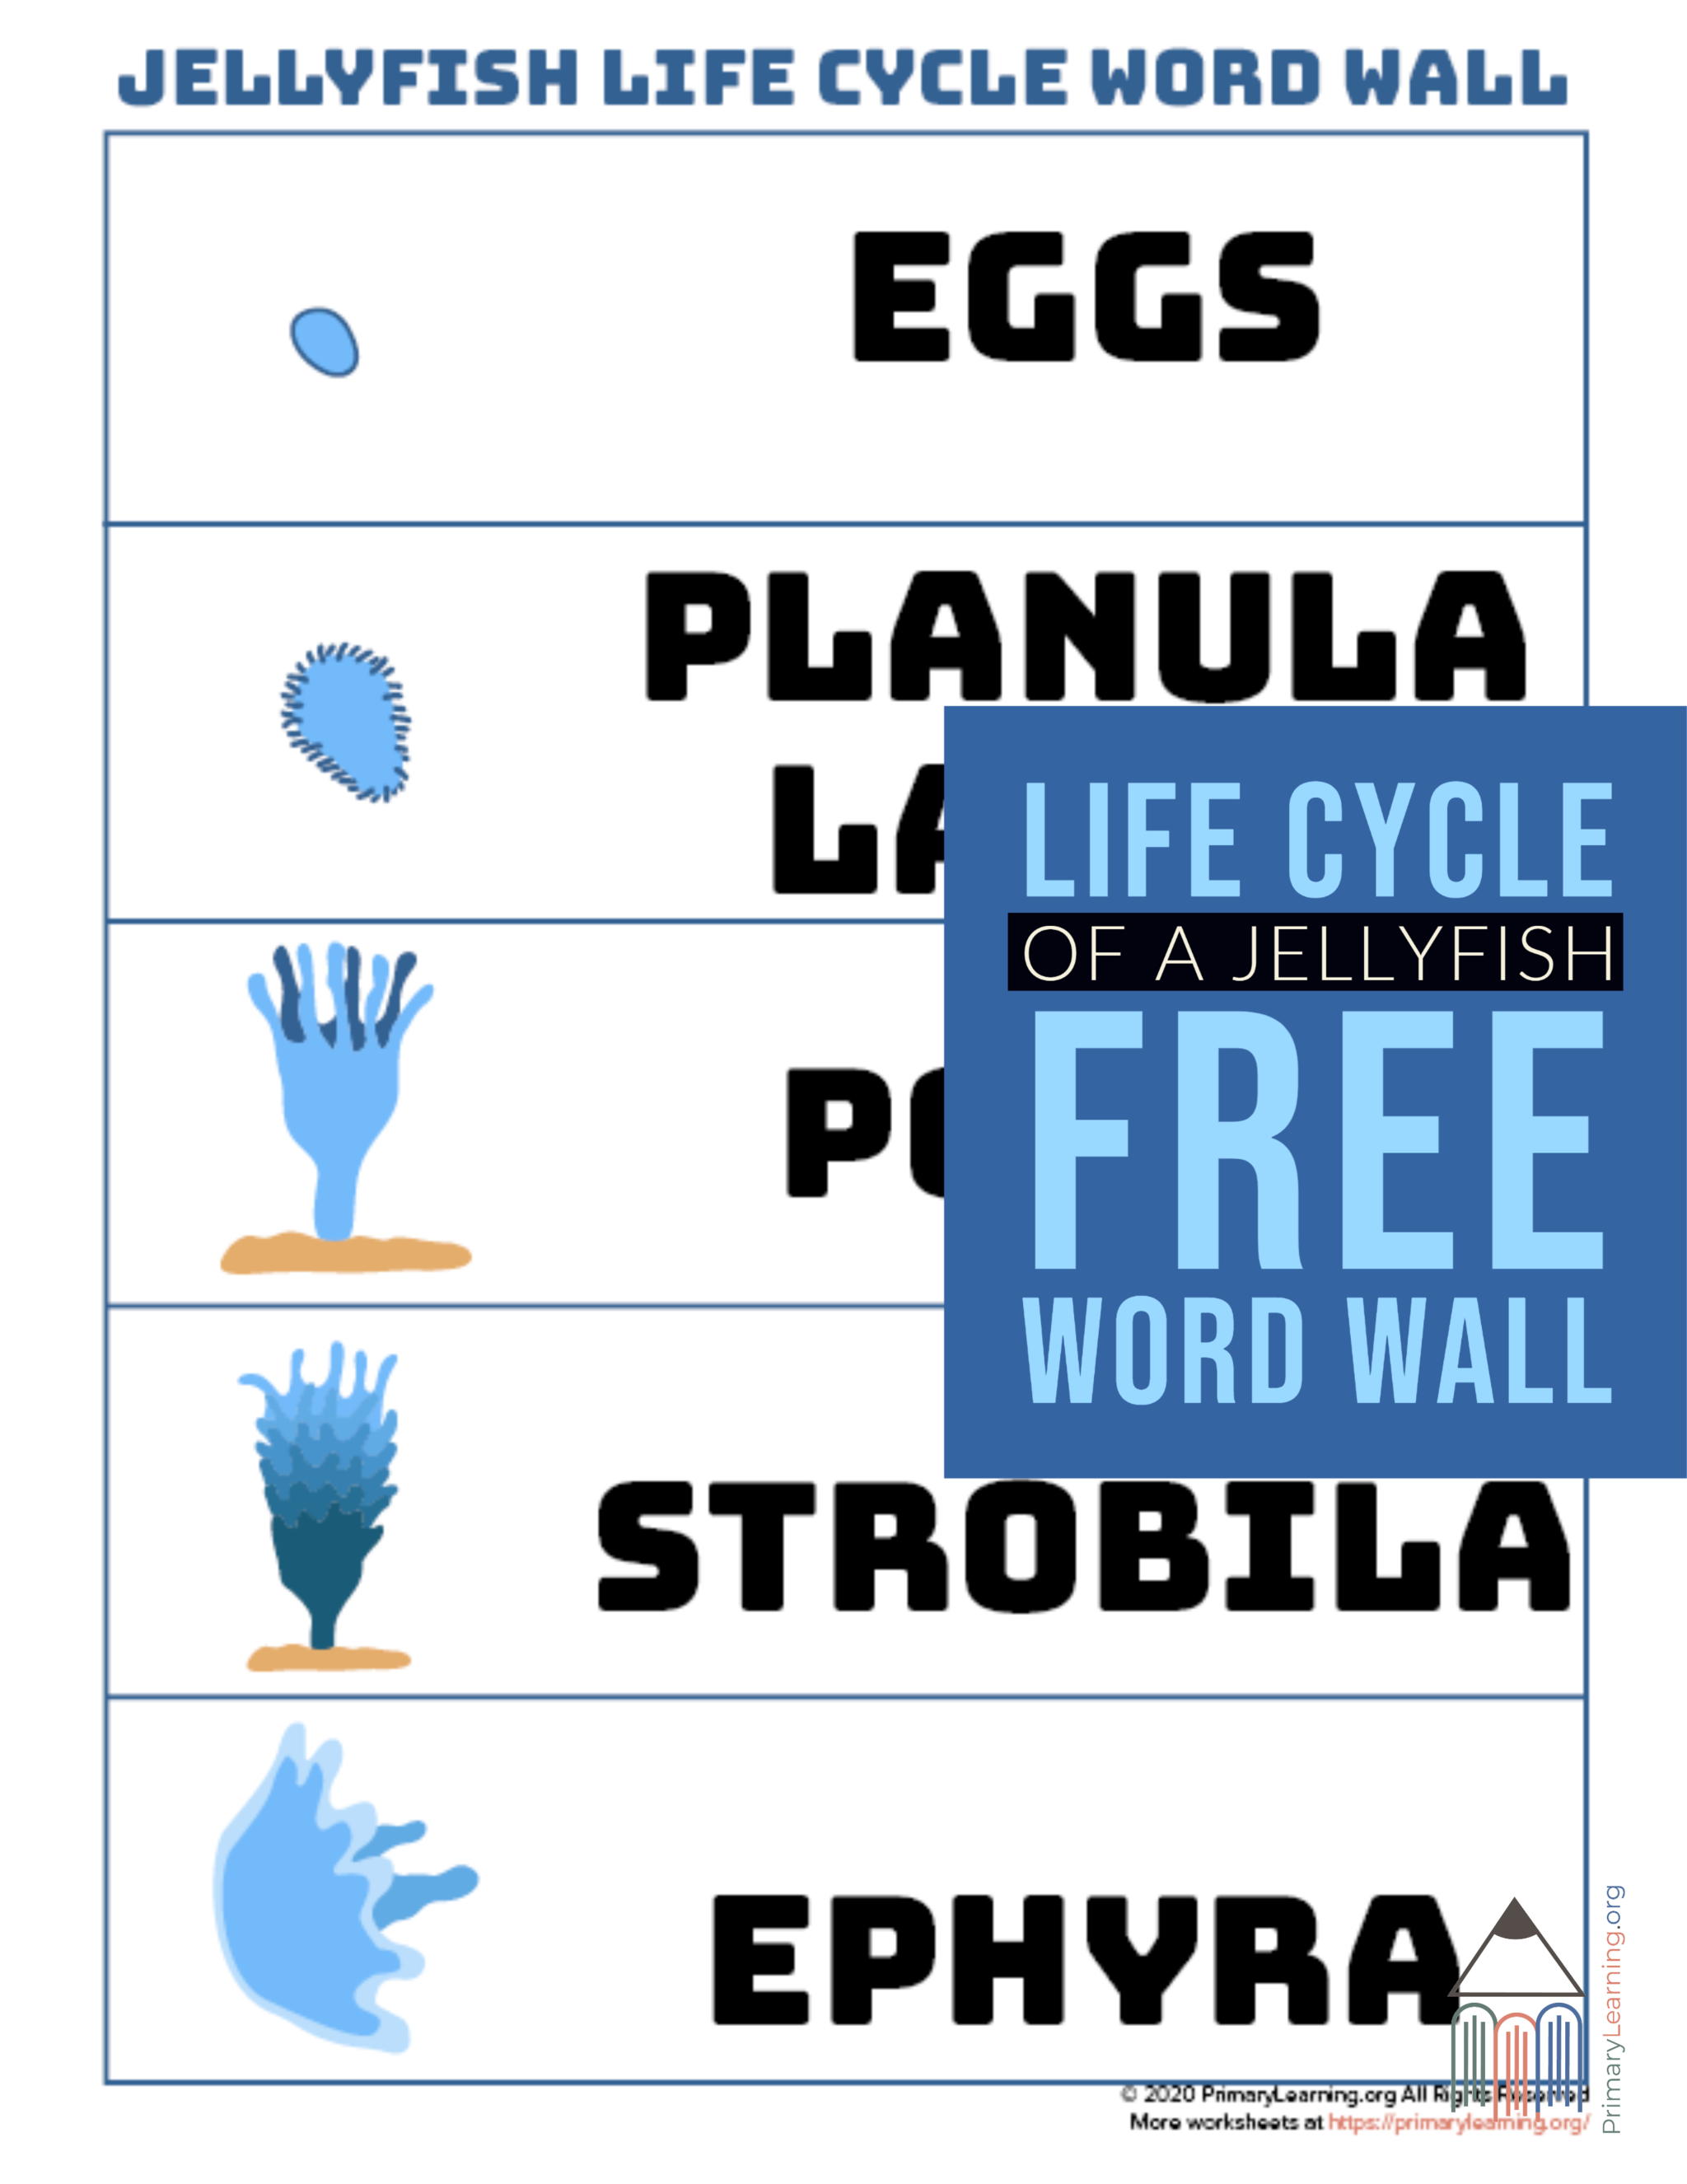 Jellyfish Life Cycle Word Wall In